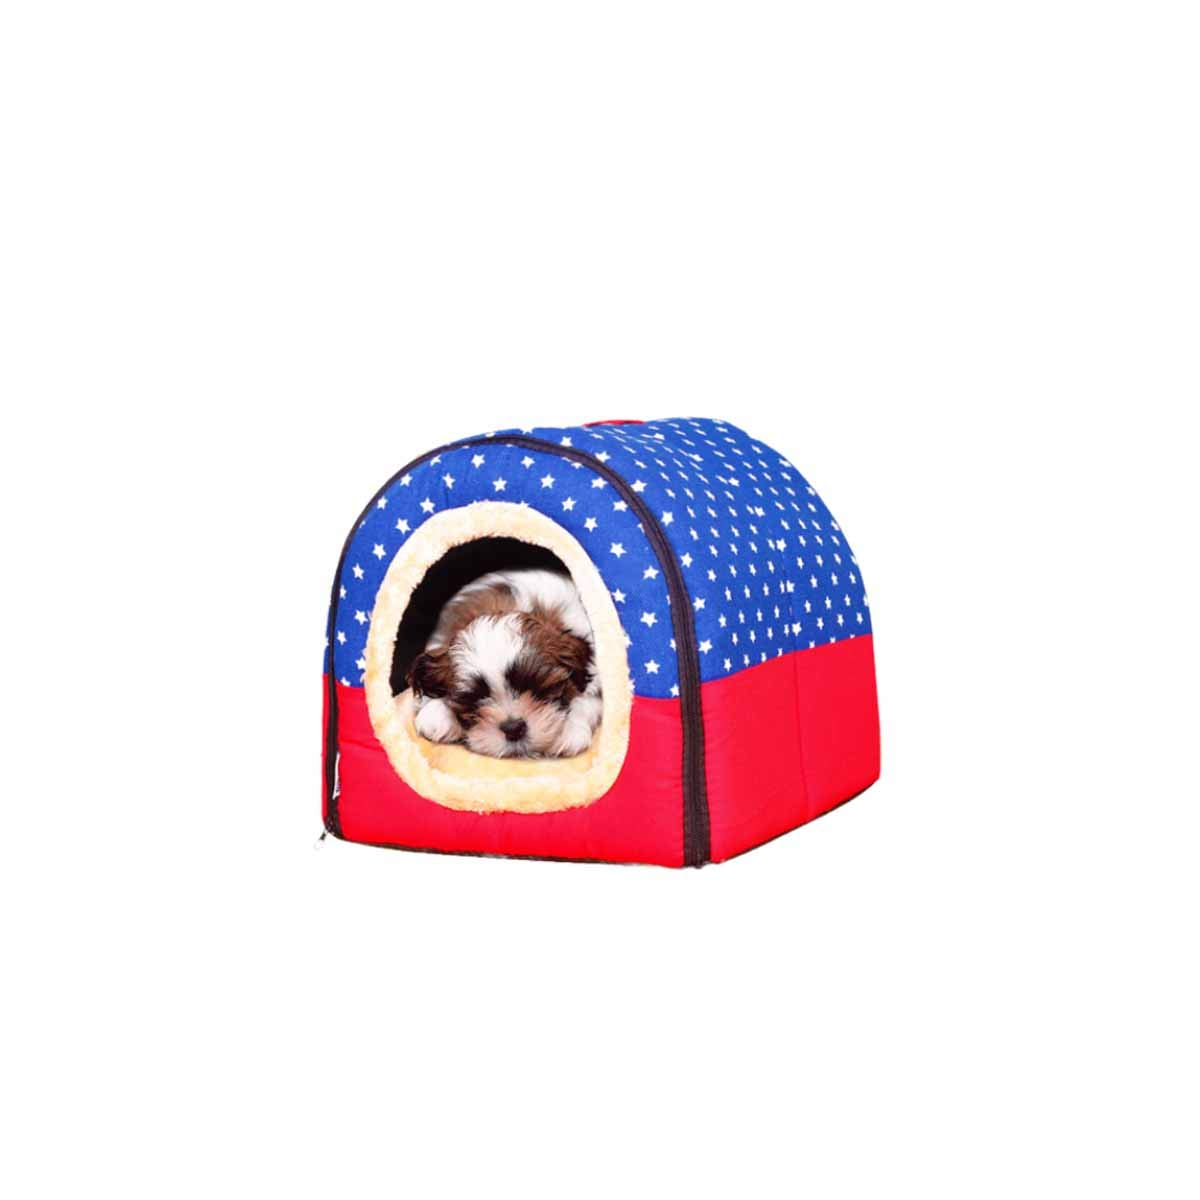 Red brick XL Red brick XL Muziwenju kennel,Cat kennel, dog house, small medium size large, large dog, removable dog bed, pet nest, Teddy warm red brick, (color   Red brick, Size   XL)